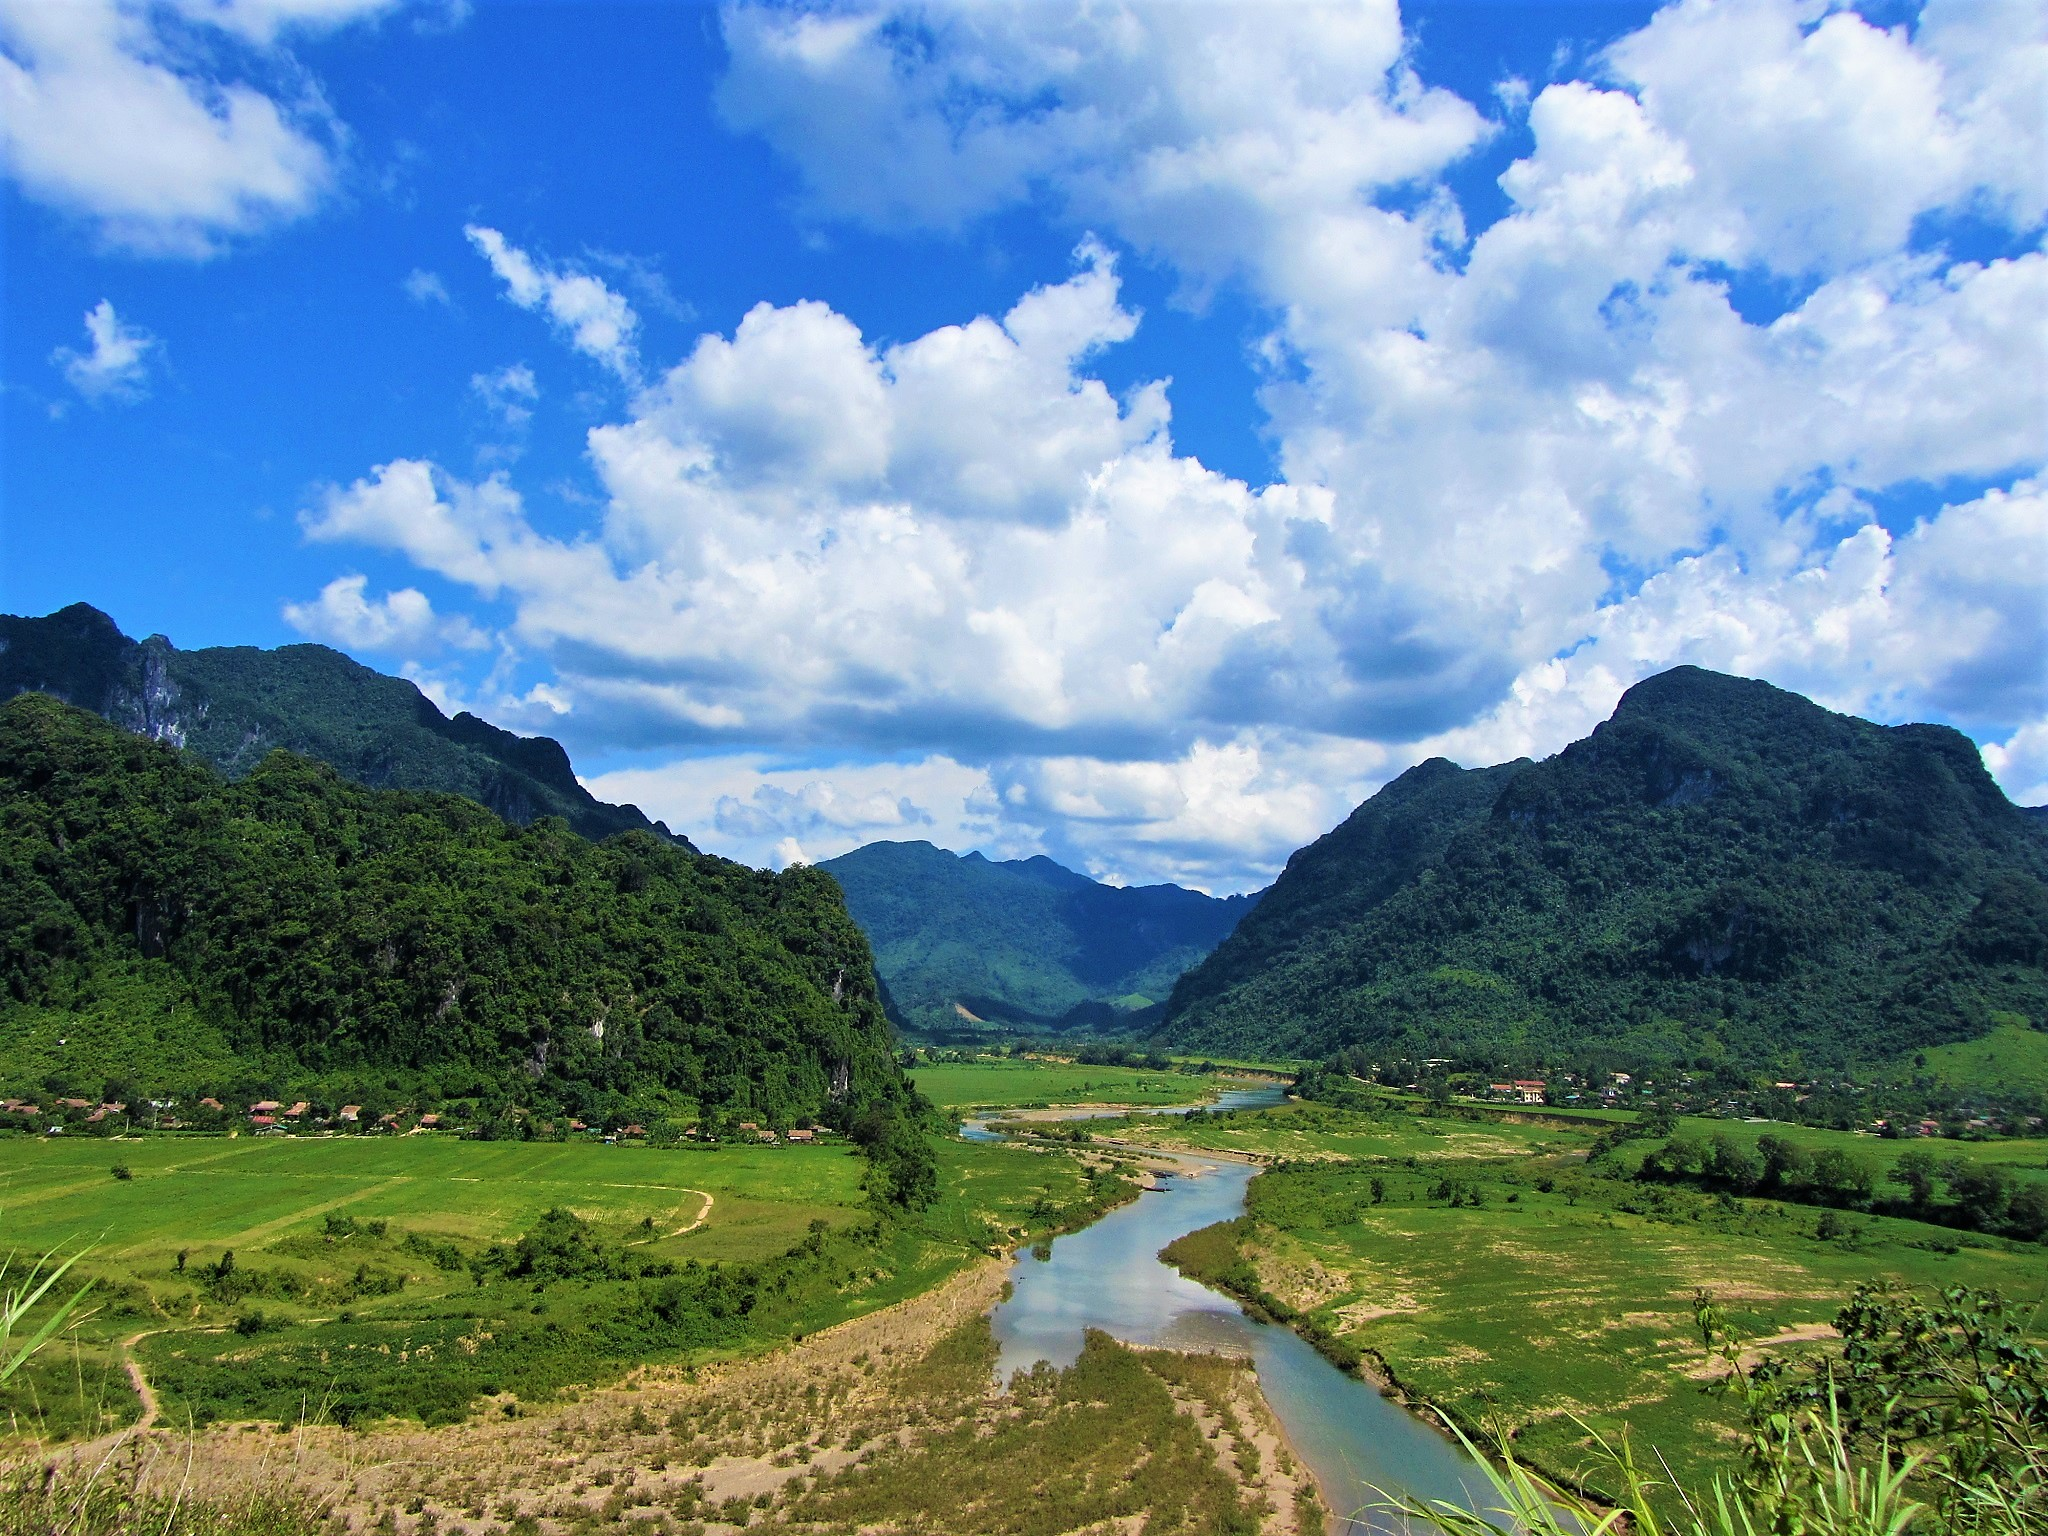 The gorgeous Long Dai River Valley, location of the Only Hotel on the Western Ho Chi Minh Road, Central Vietnam